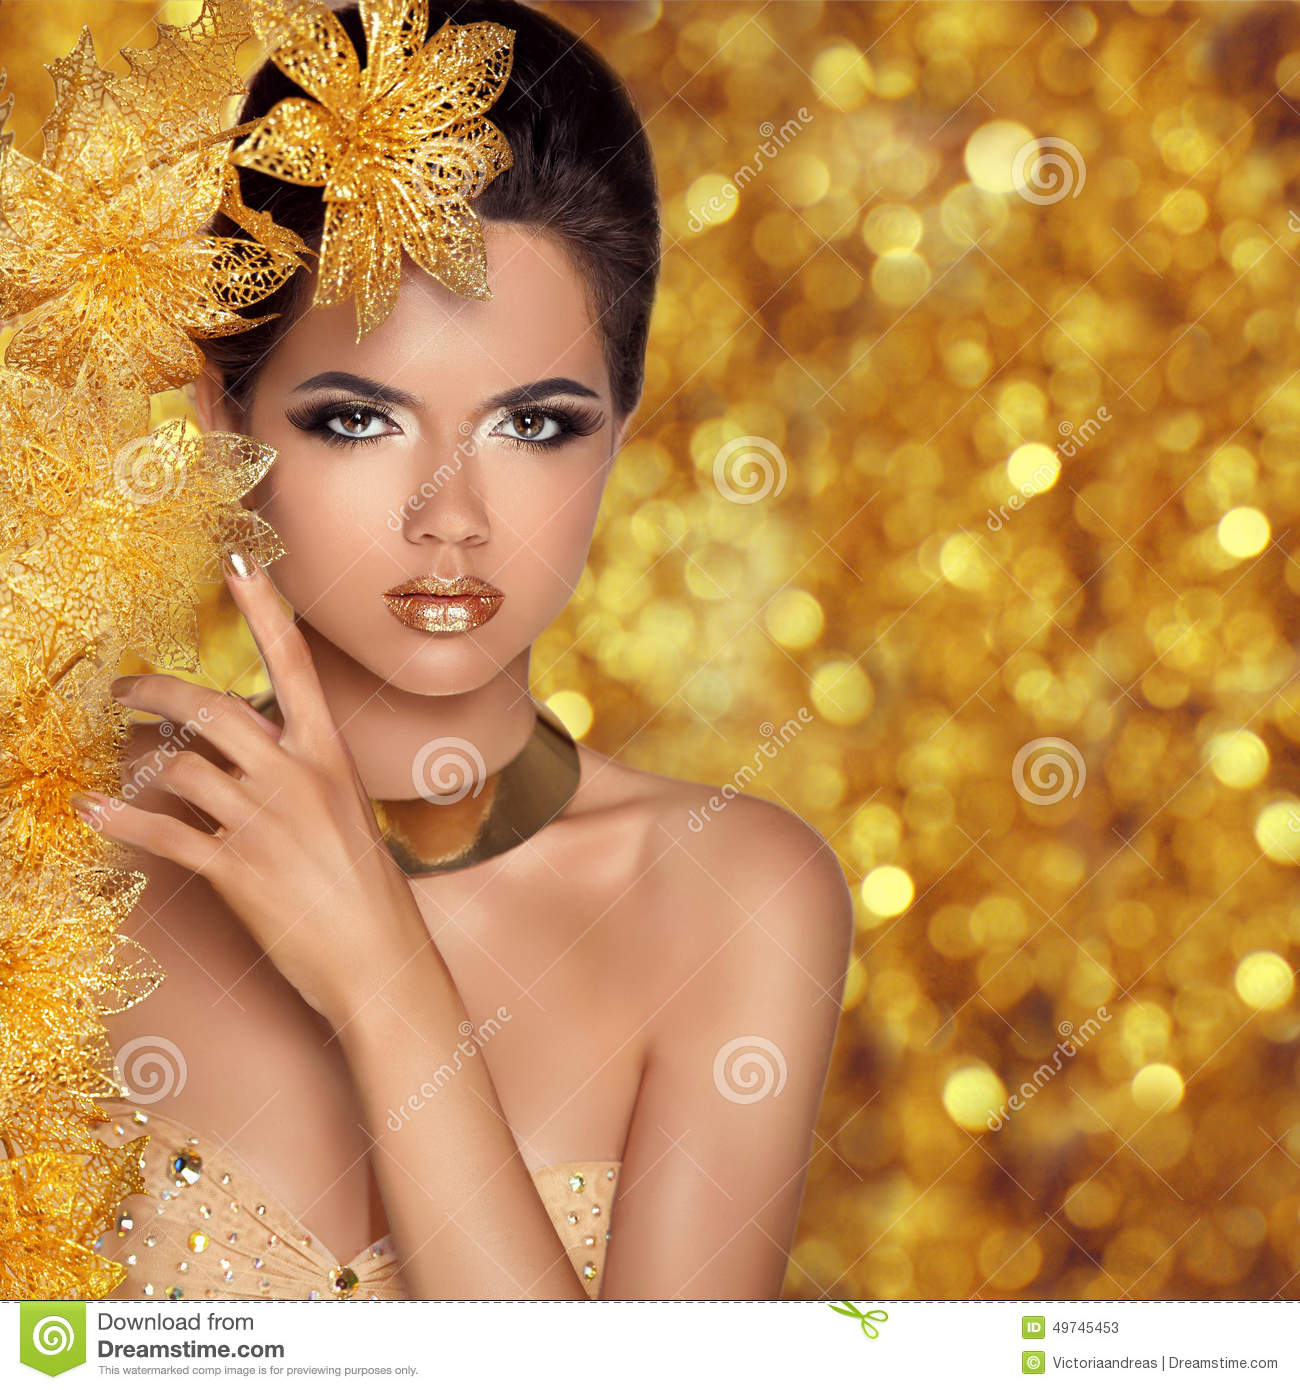 Glamorous Beauty Portrait Stock Photo - Image: 65790636